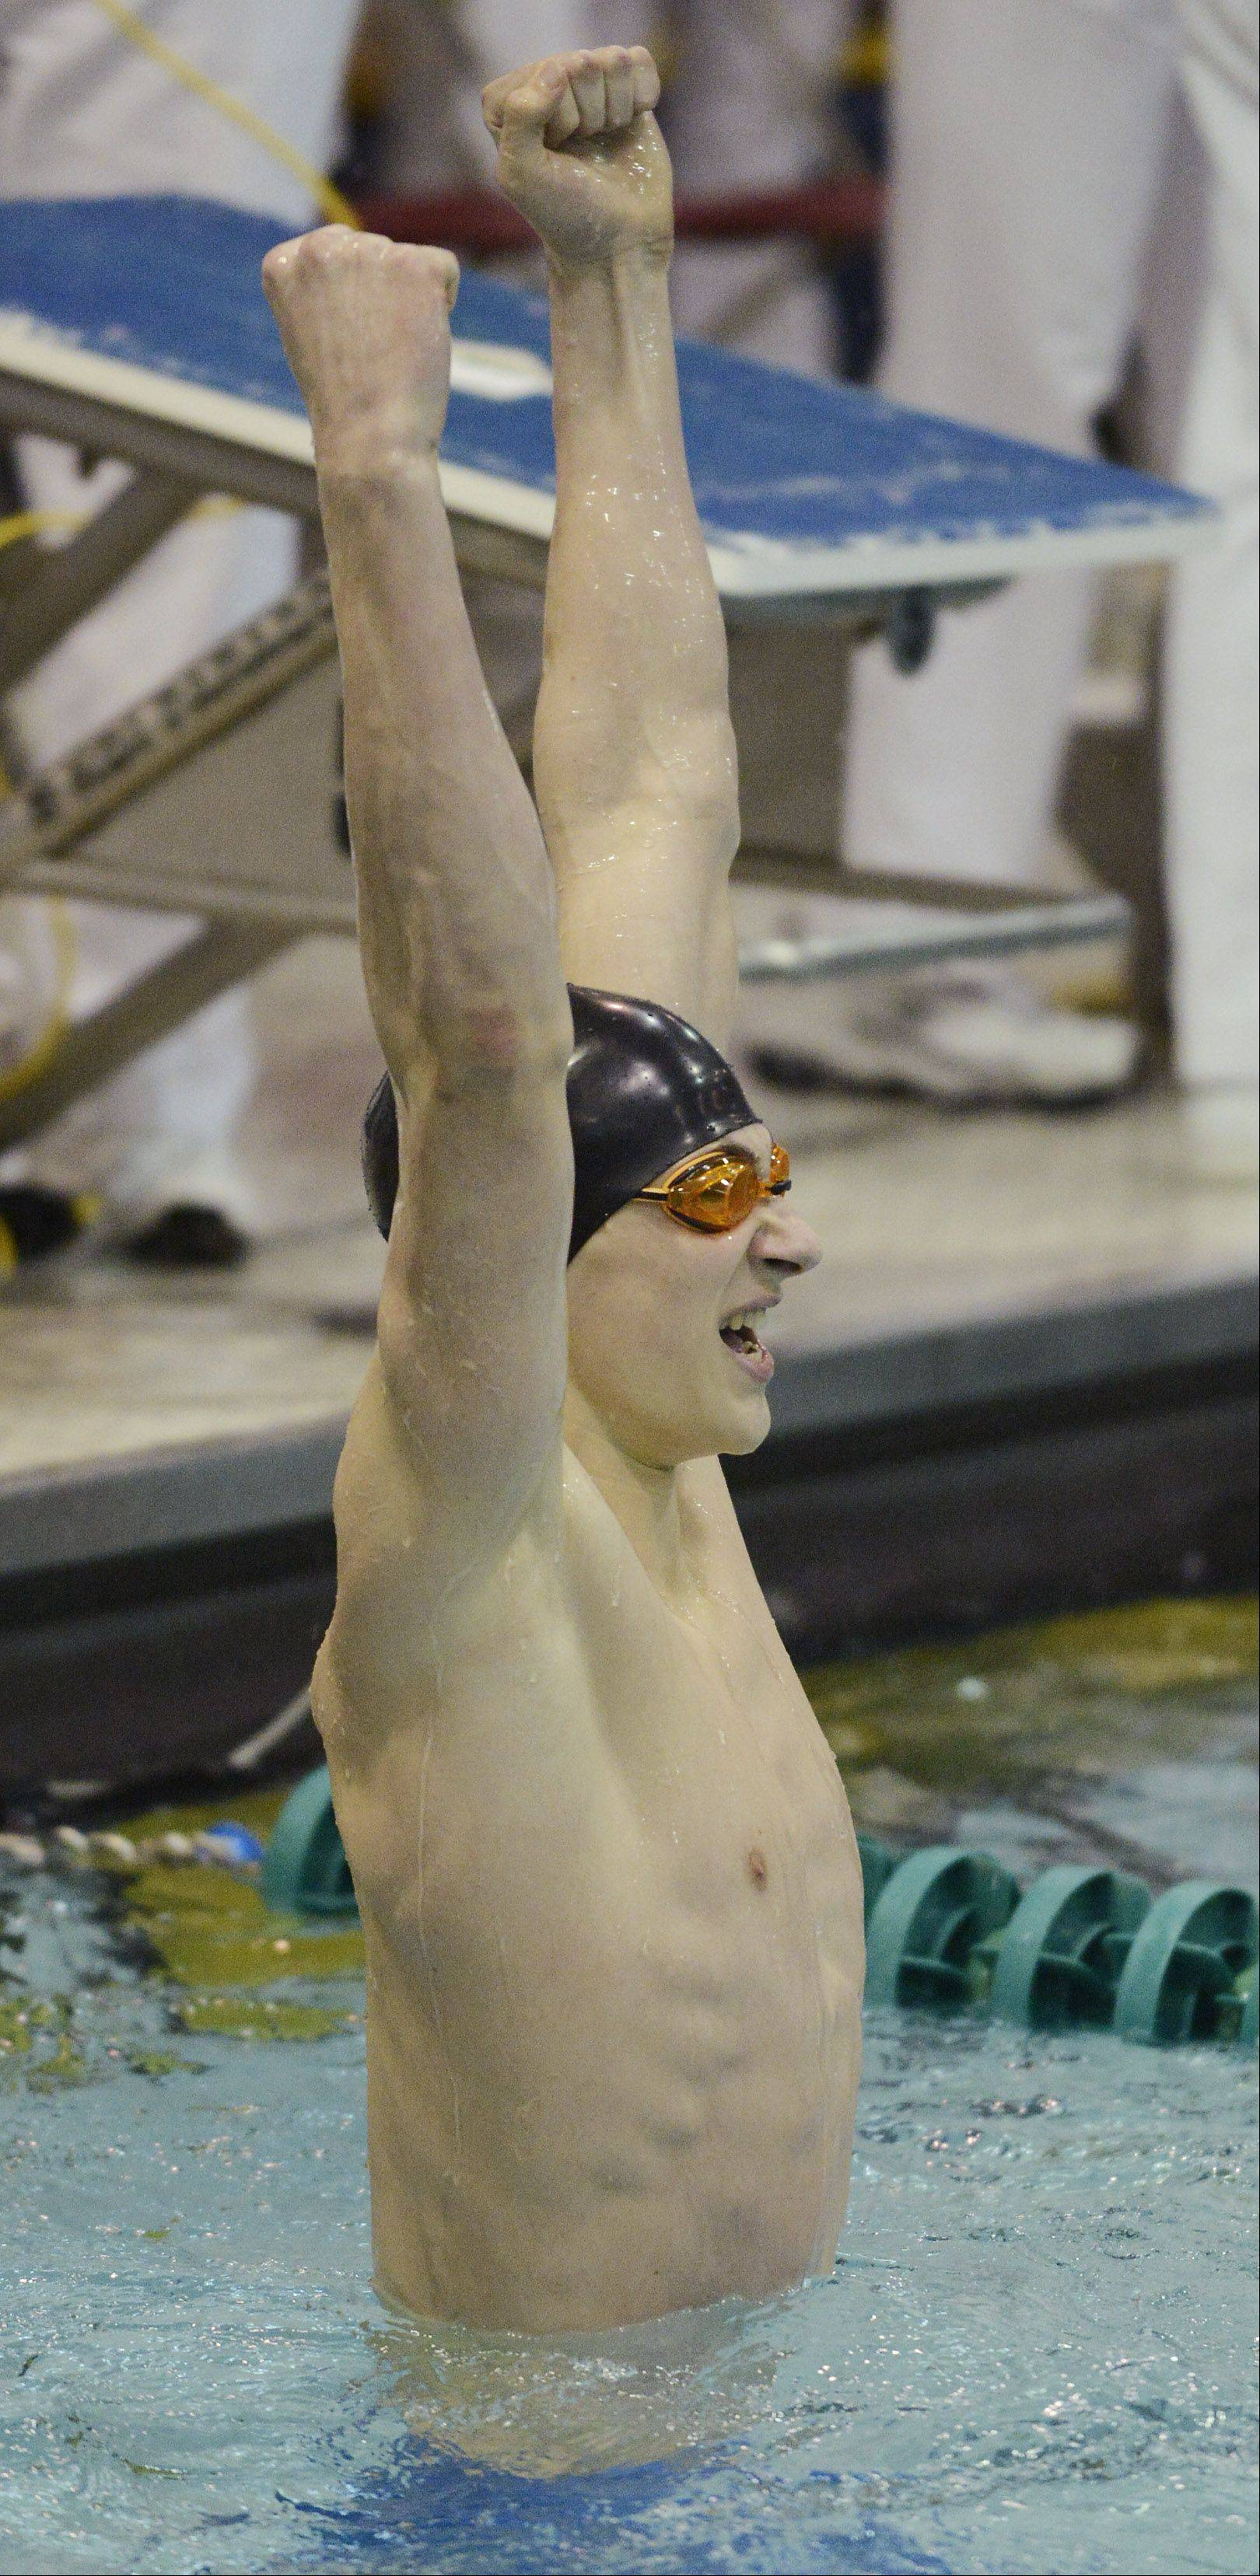 Mundelein's Connor Black celebrates after setting a national record in the 100-yard butterfly of 46.71 in the boys swimming state finals at New Trier High School in Winnetka on Saturday.